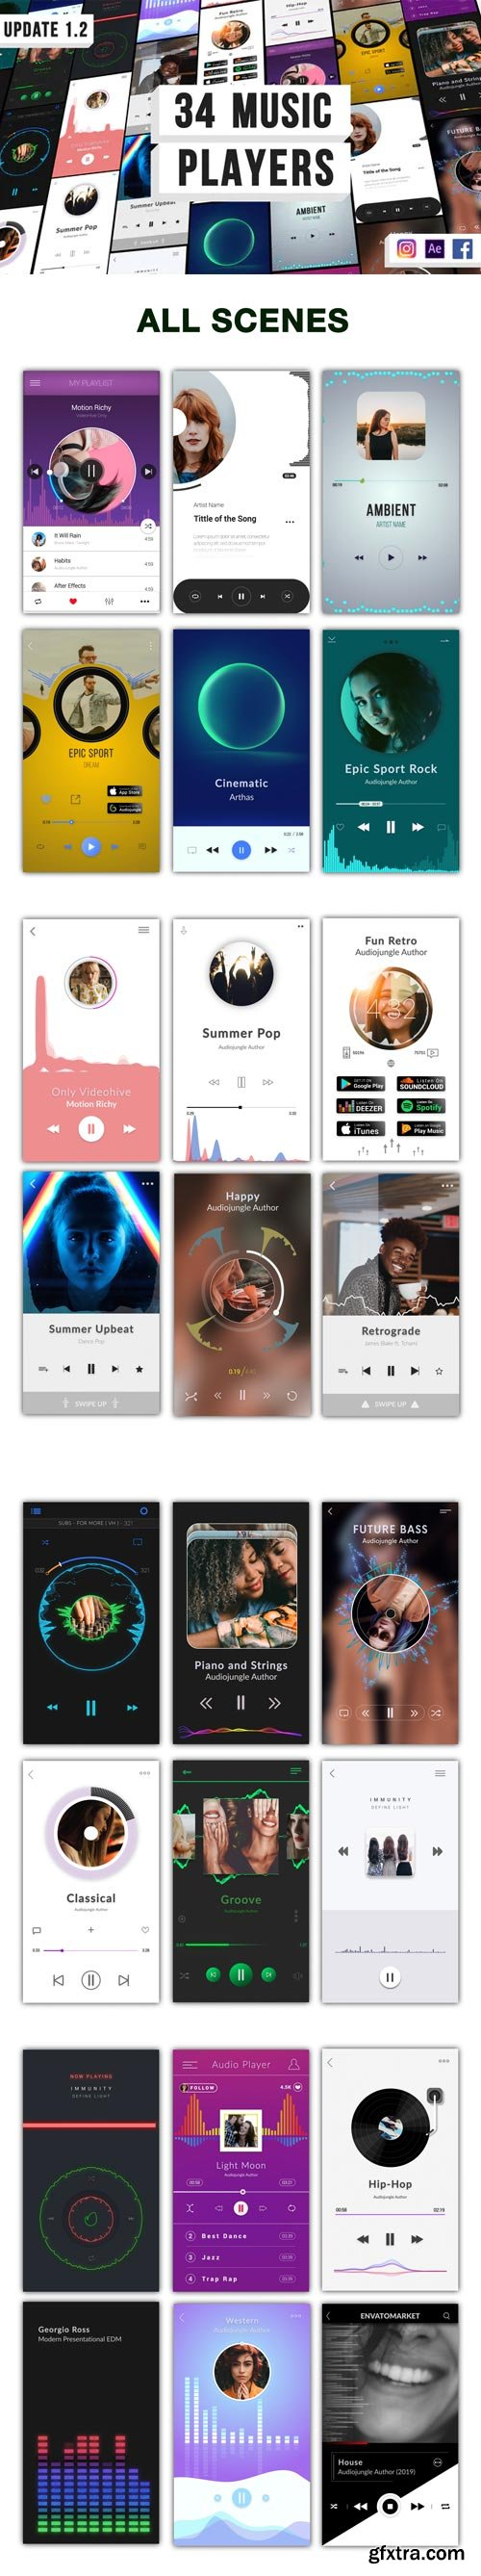 Videohive - Music Visualization Players for Instagram Story V1.2 - 24380096